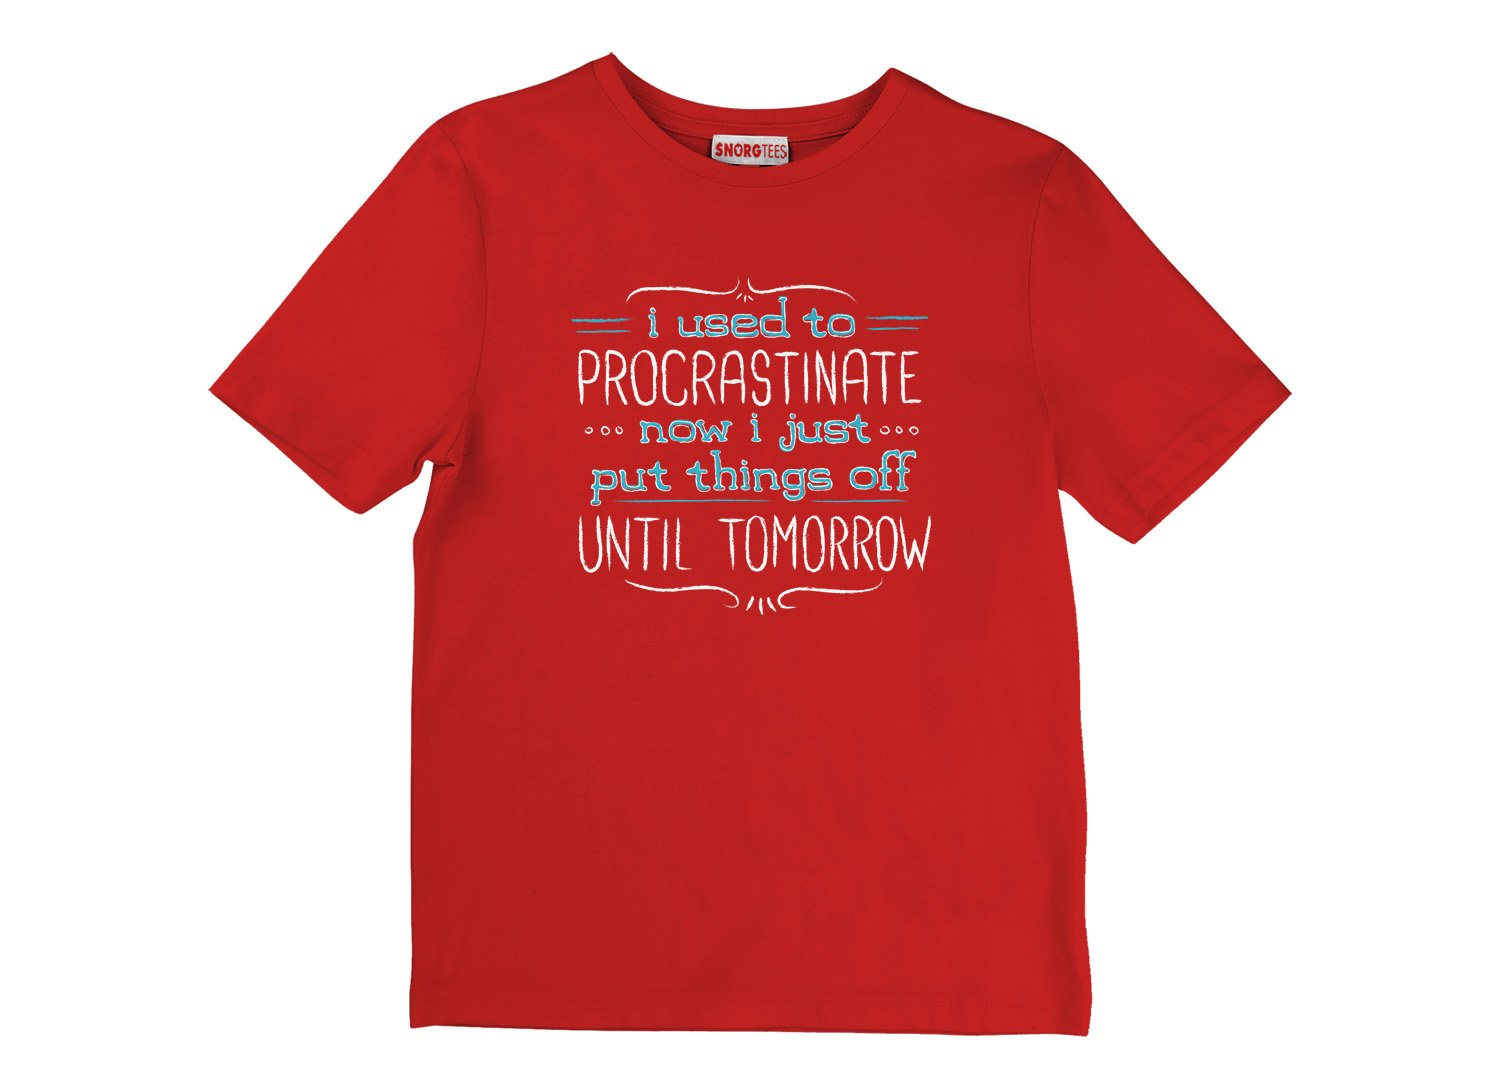 Now I Just Put Things Off Until Tomorrow on Kids T-Shirt